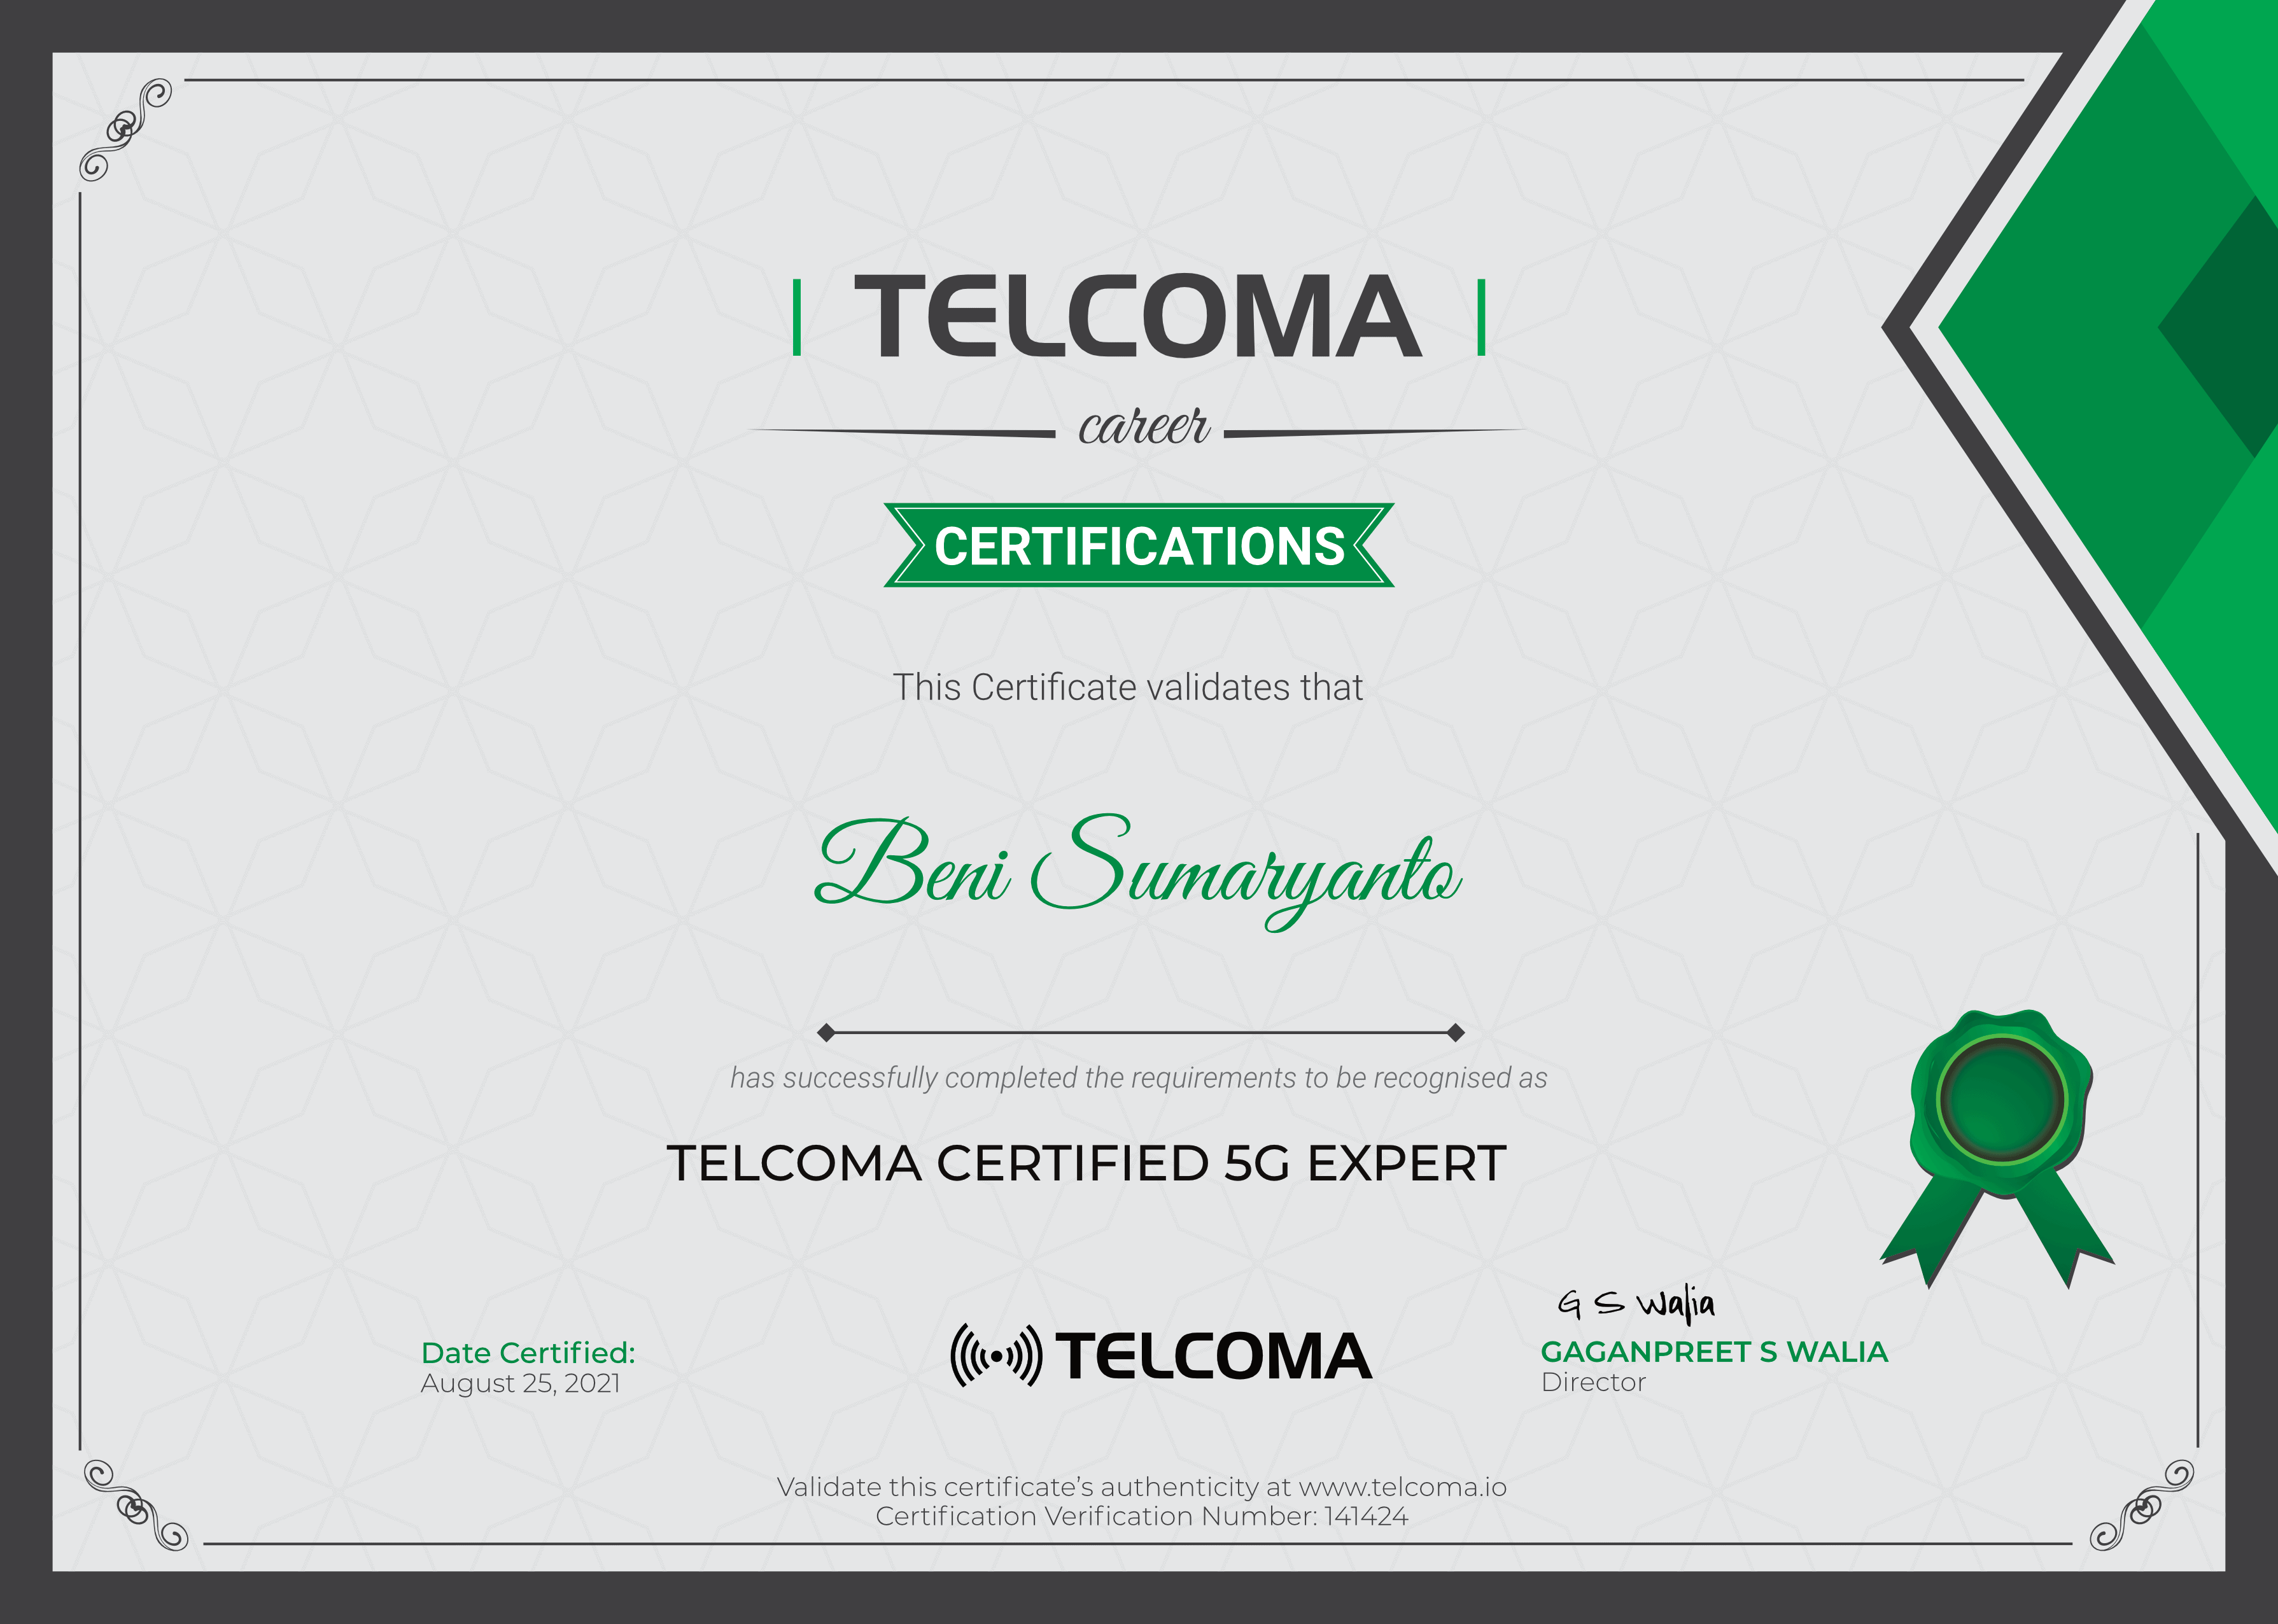 telcoma career certifications